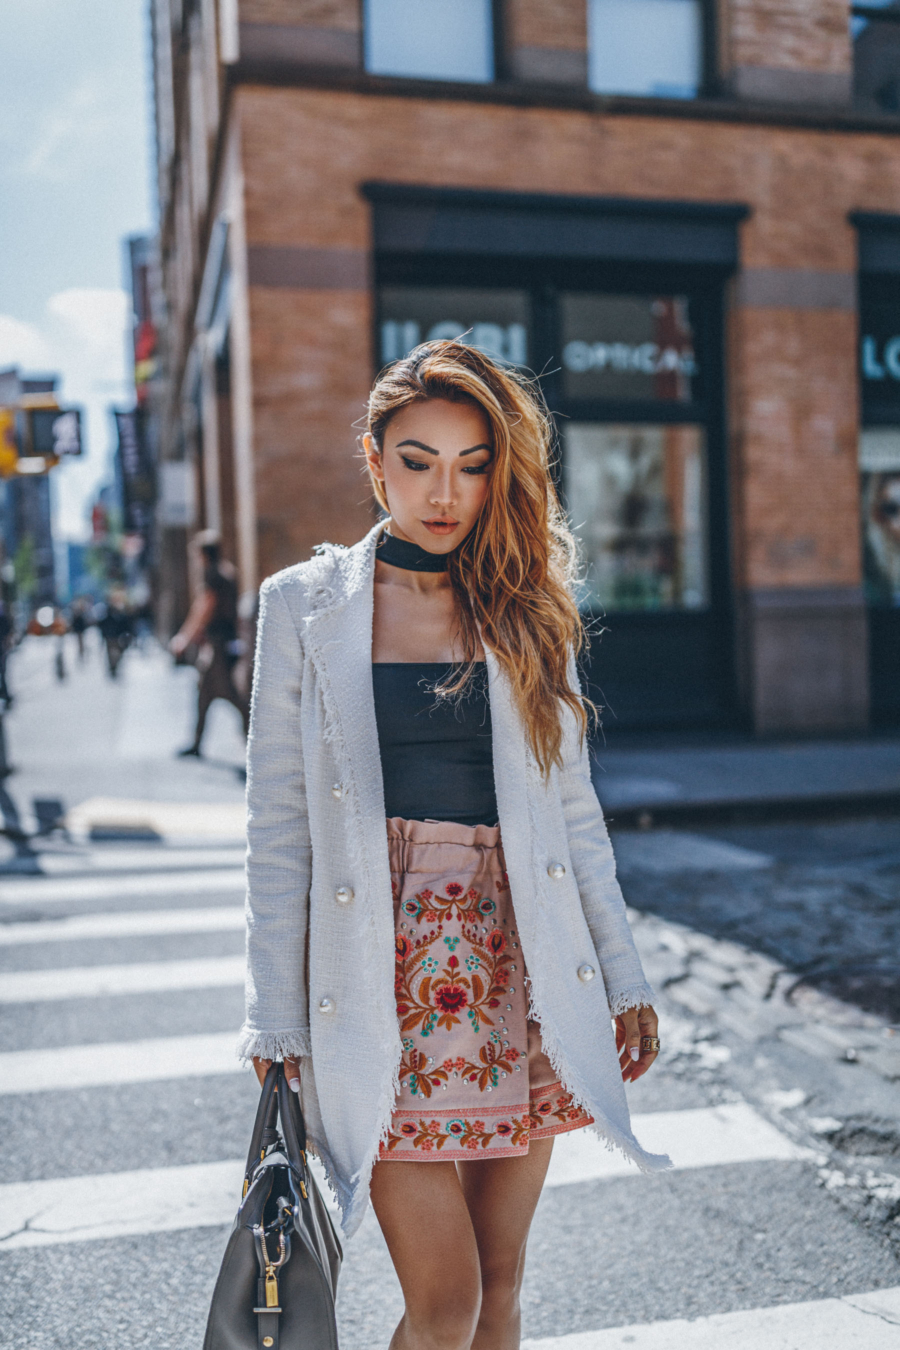 Floral Embroidery Skirt - Different Ways To Wear Floral Embroidery To Perfection // NotJessFashion.com